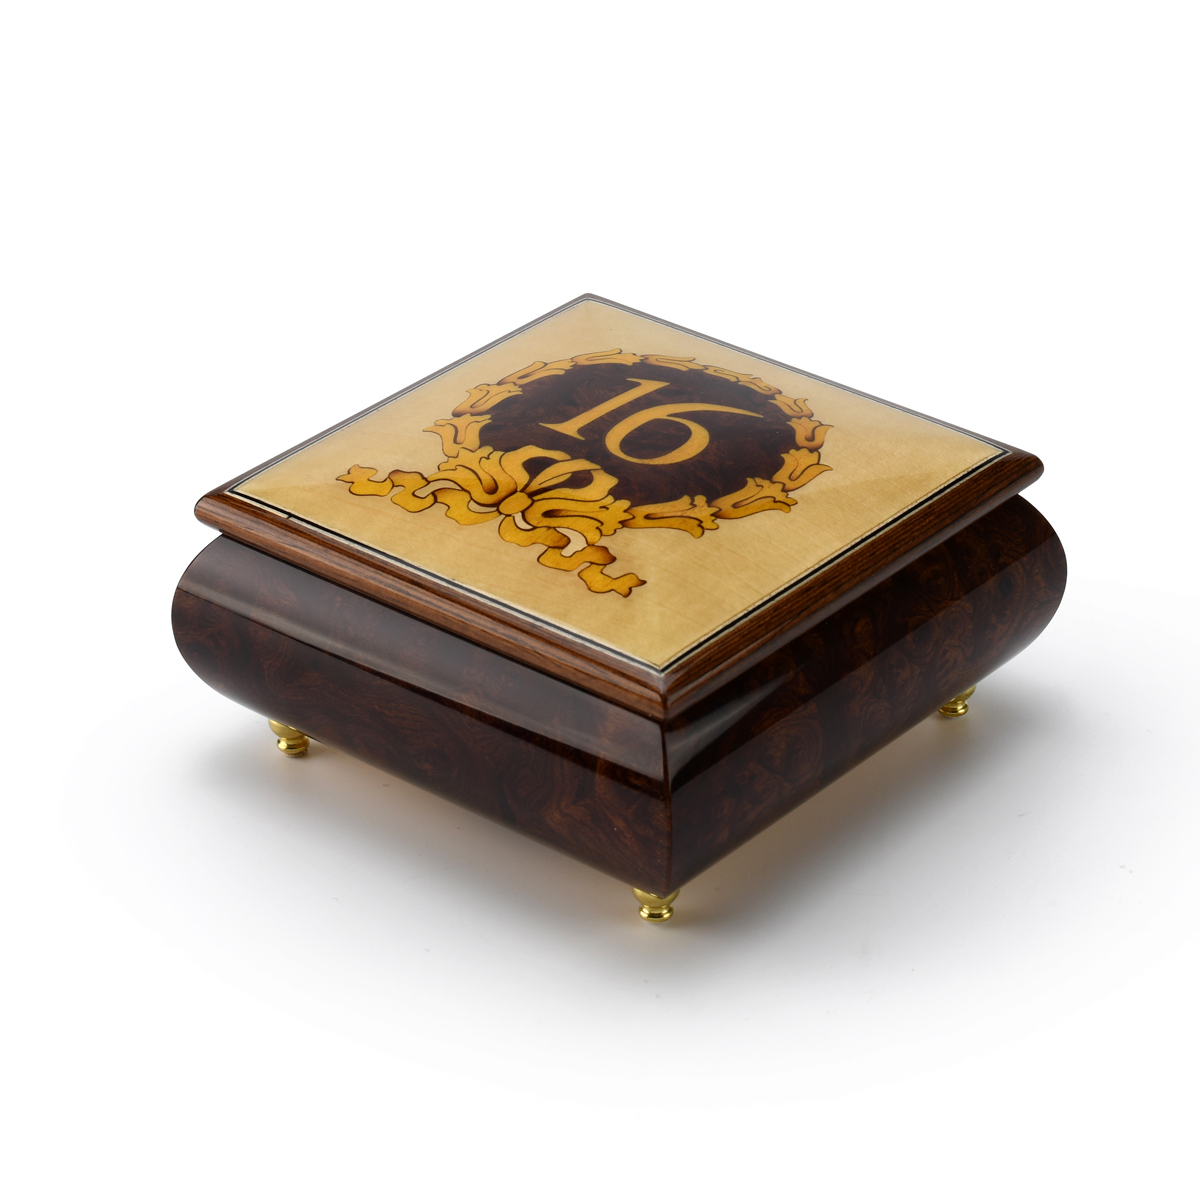 Sweet 16 Centered in Gold Wreath Sorrento Inlaid Music Jewelry Box